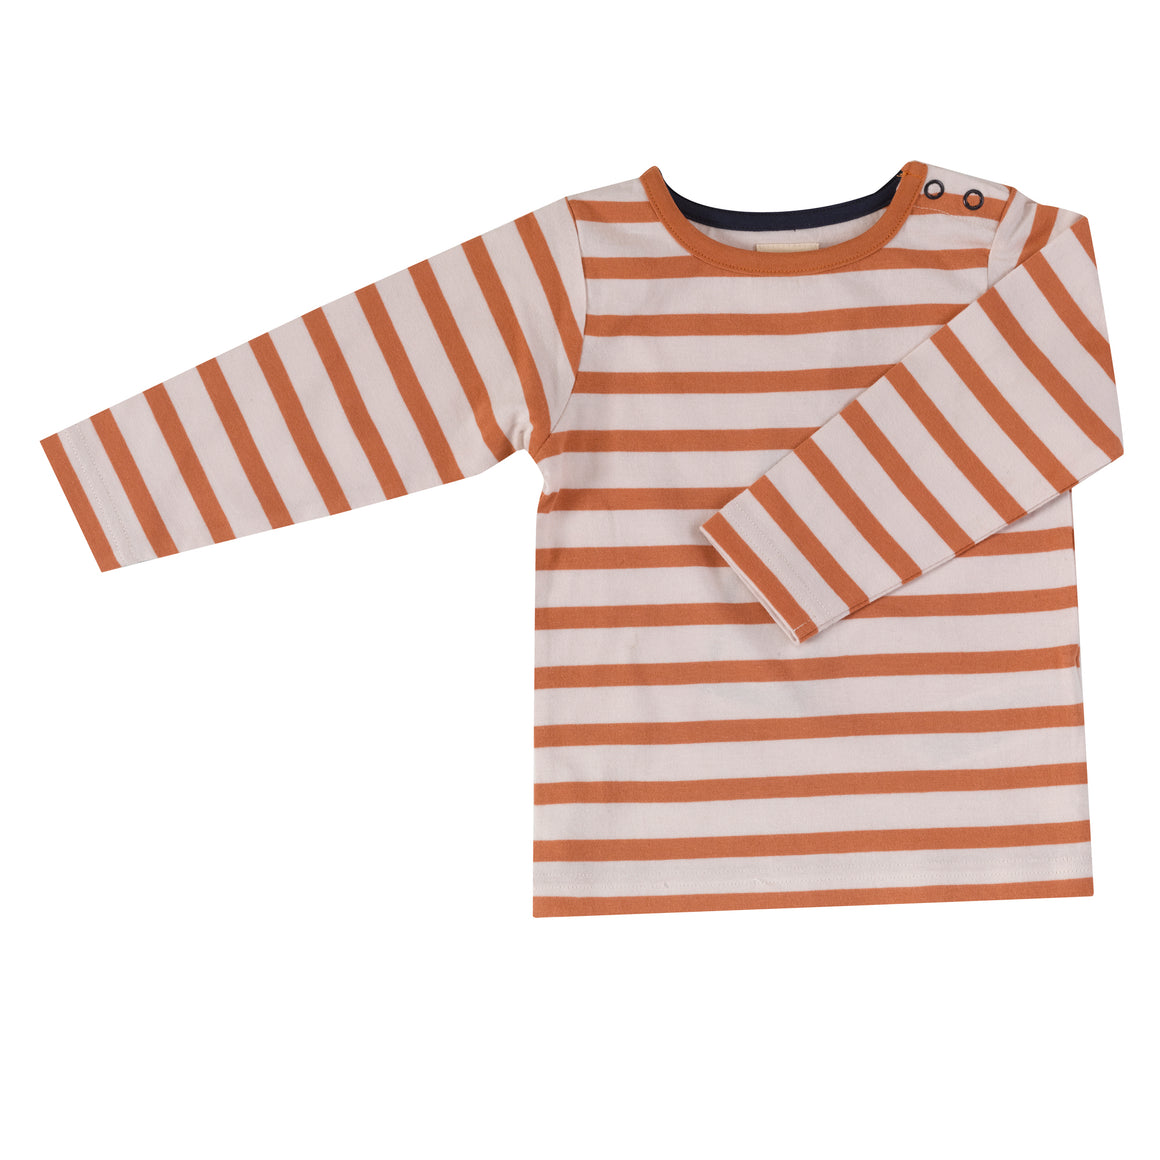 Long sleeve T-shirt in sienna breton stripe